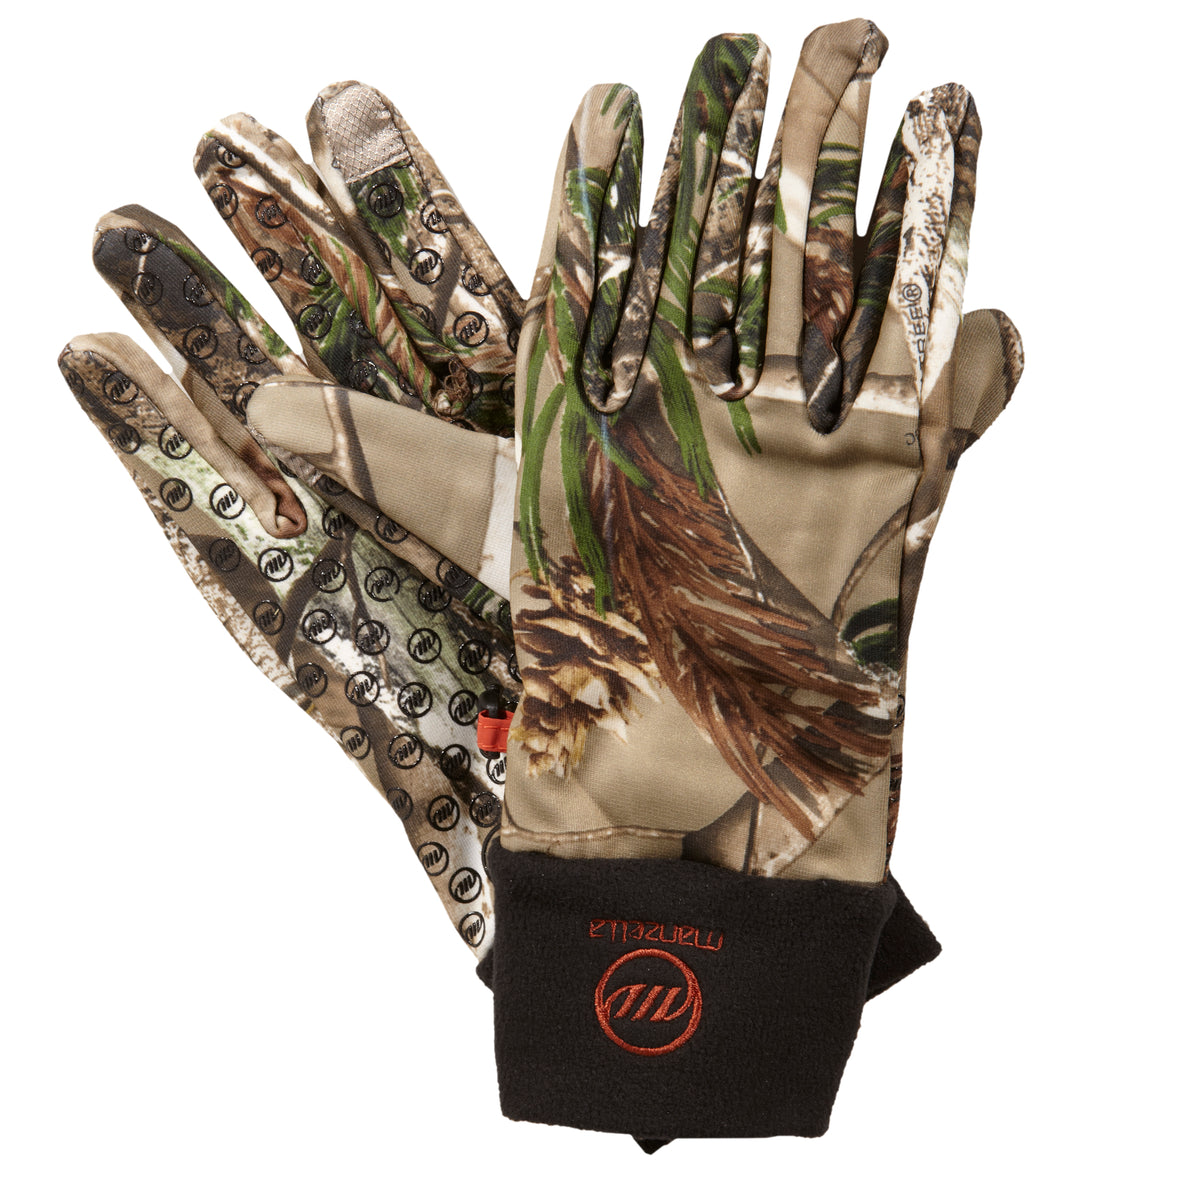 Manzella RANGER TouchTip Hunting Gloves for Men